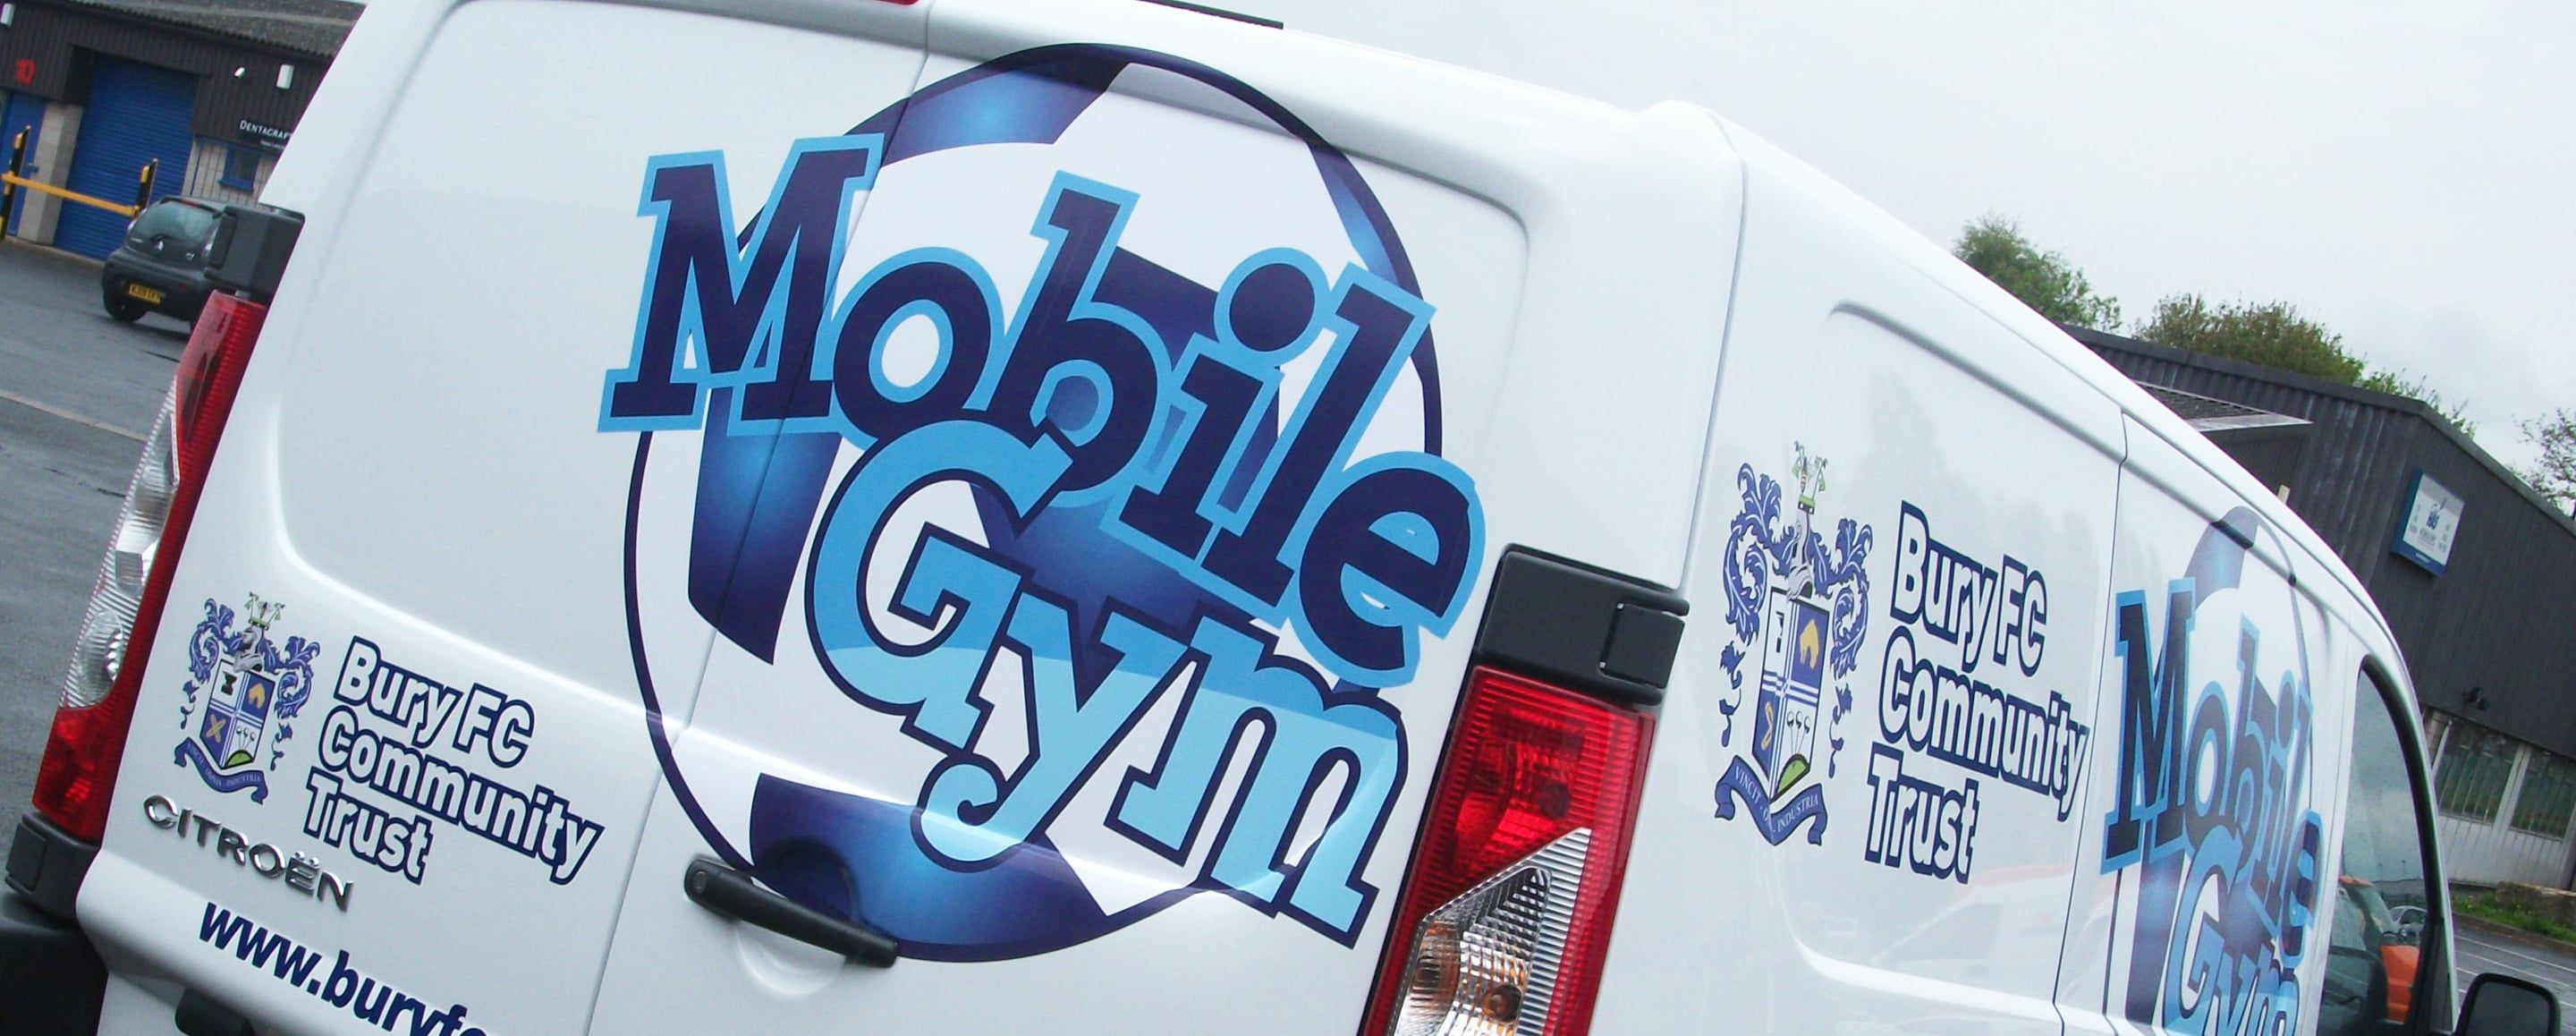 sign makers manchester, Vehicle graphics